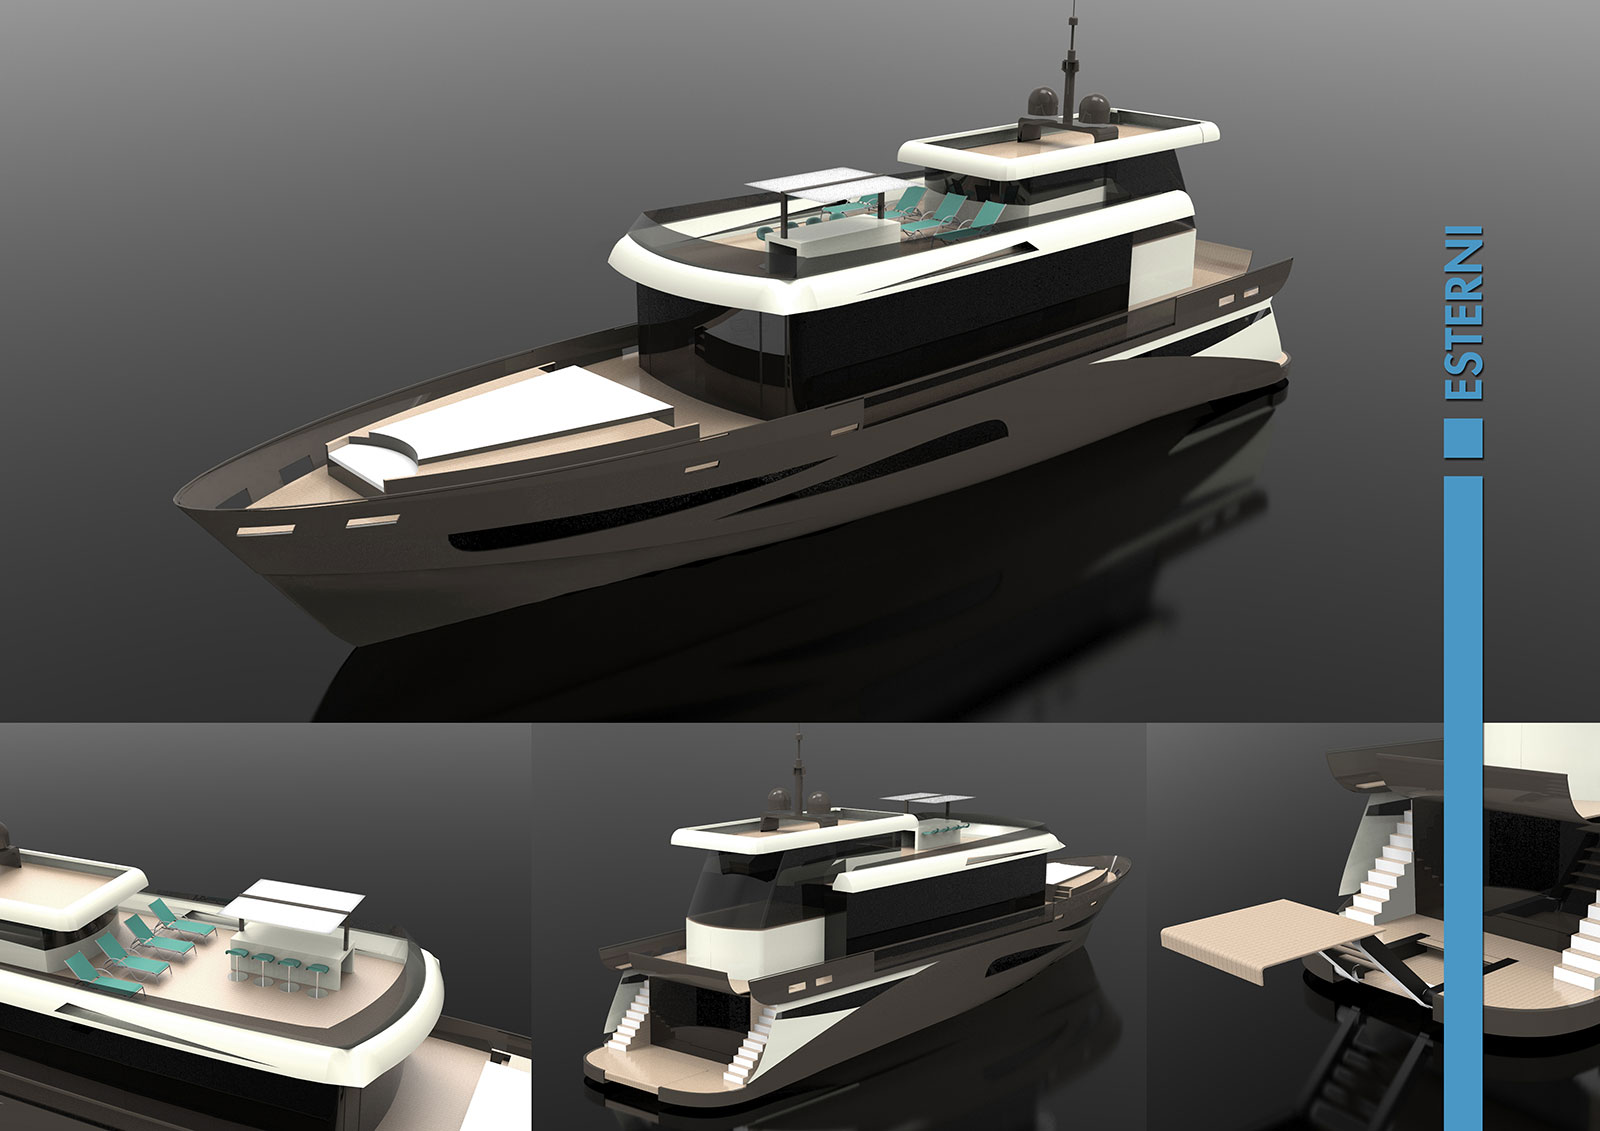 Eos 80 Yacht Concept - Exterior renderings